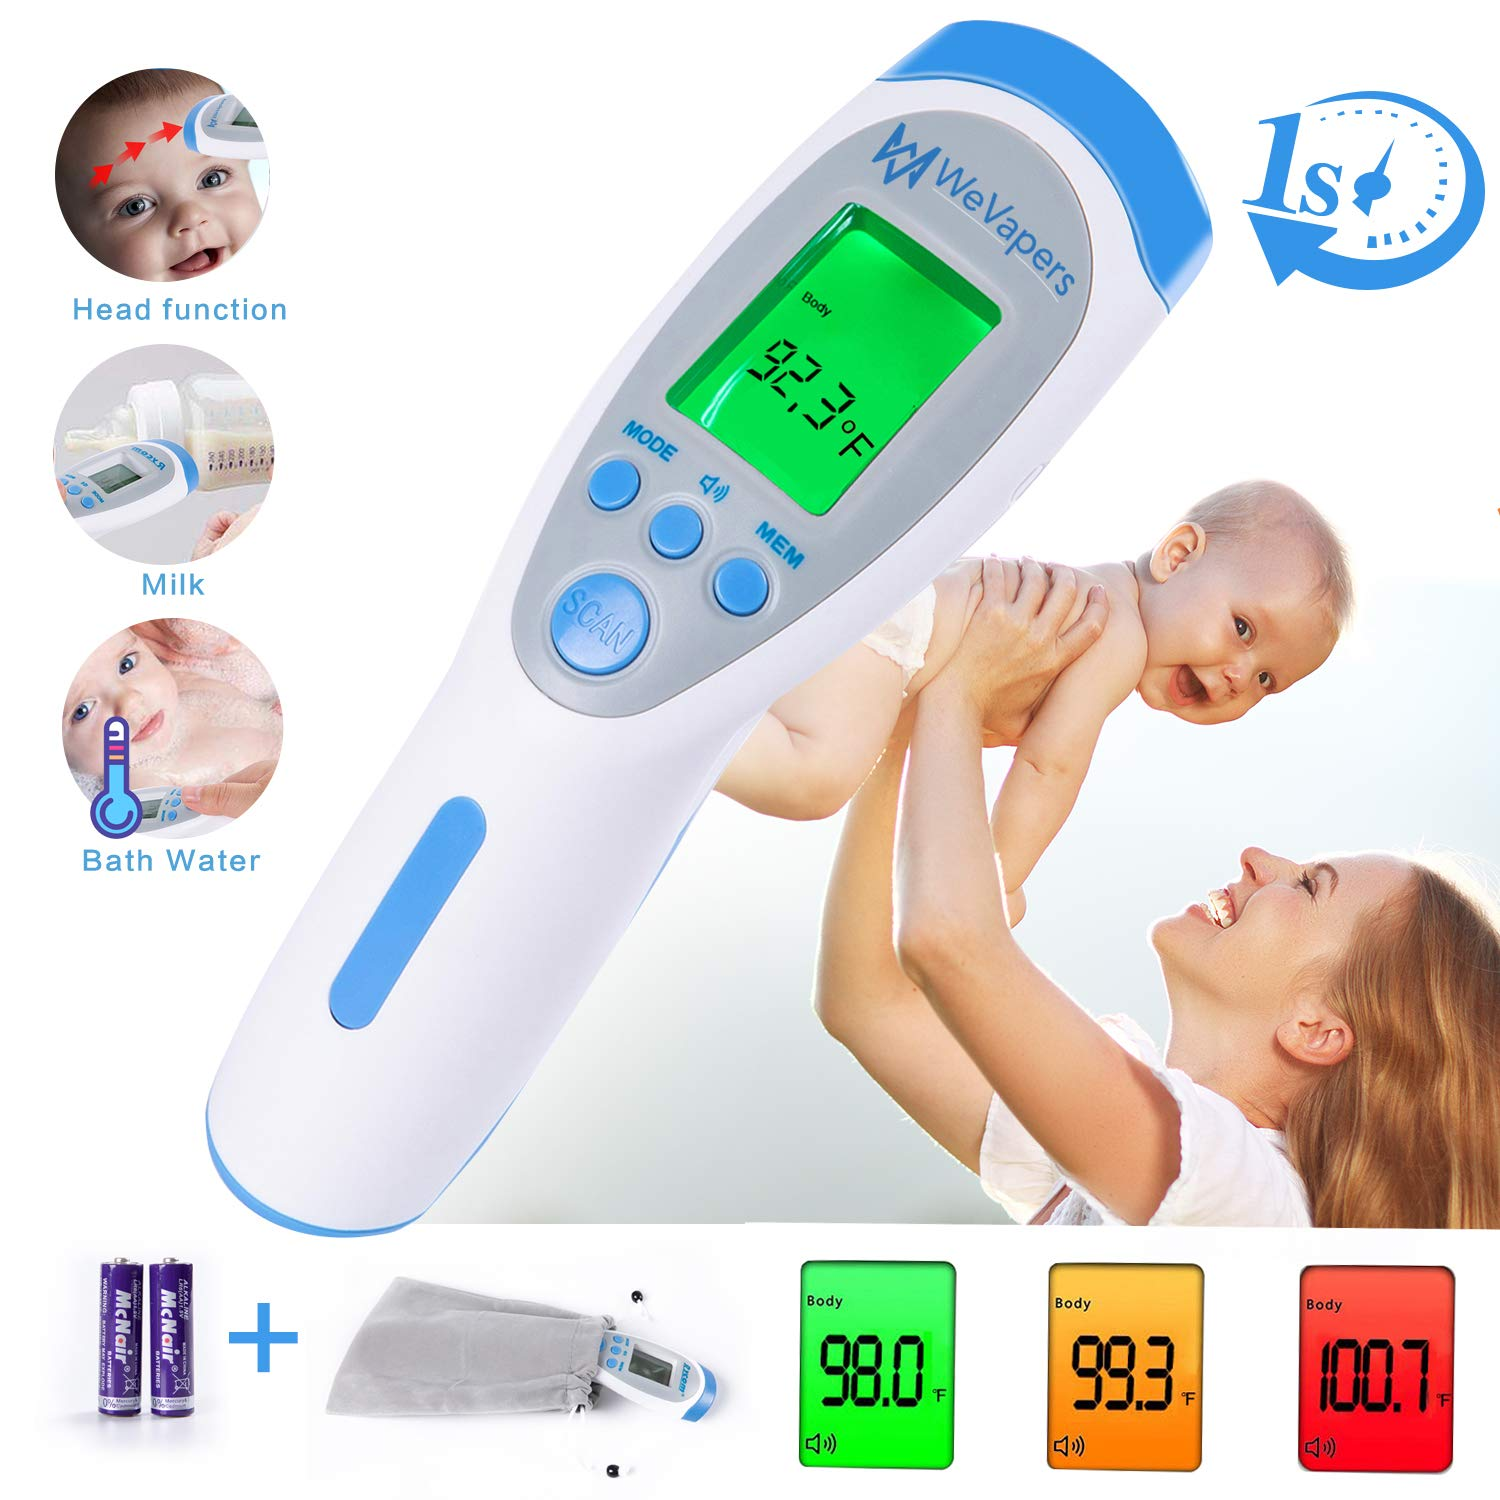 Forehead Thermometer, Digital Thermometer Non Contact Medical Infrared Thermometer for Fever, 3 Modes Body/Surface/Room Baby Thermometer, LCD Display Infrared Thermometer by Wevapers